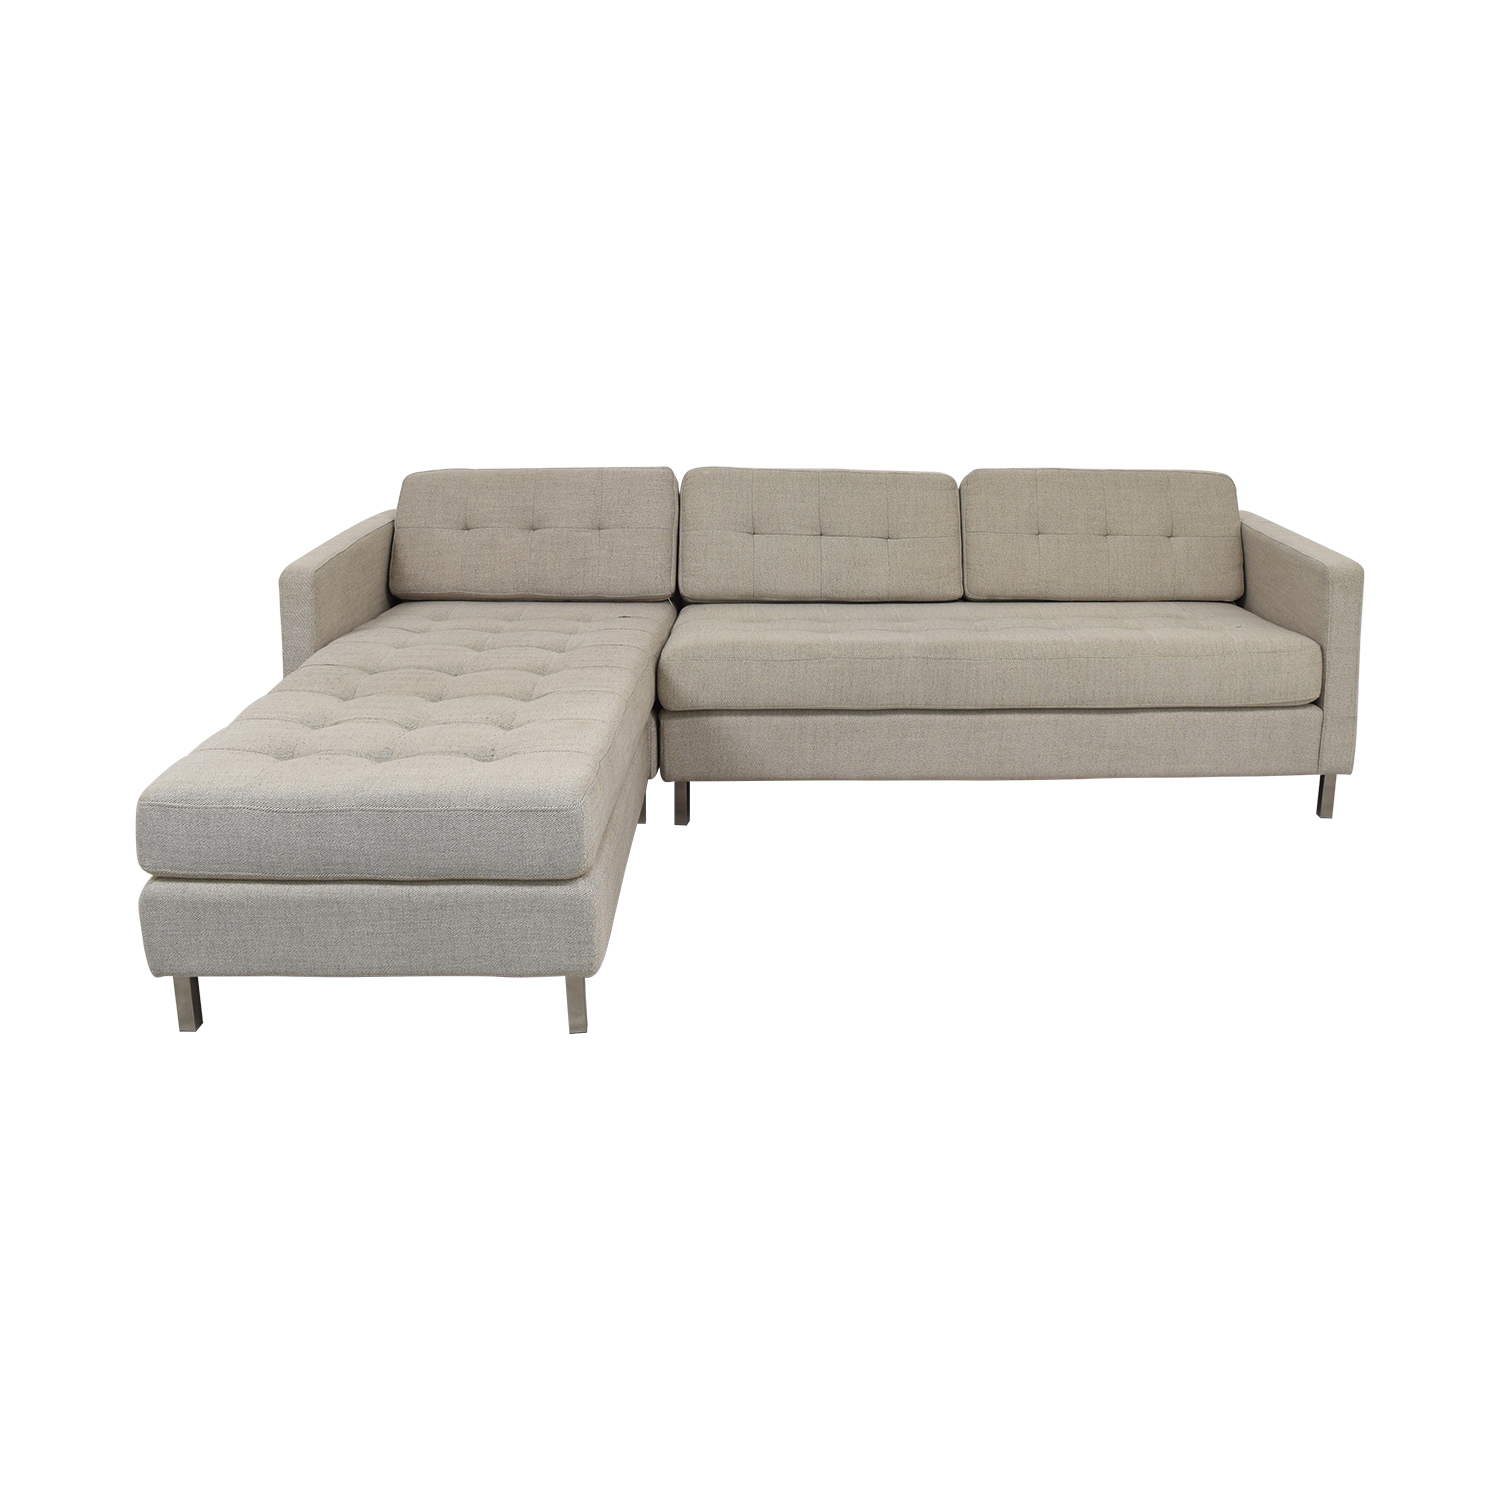 CB2 CB2 Ditto II Sectional Sofa on sale